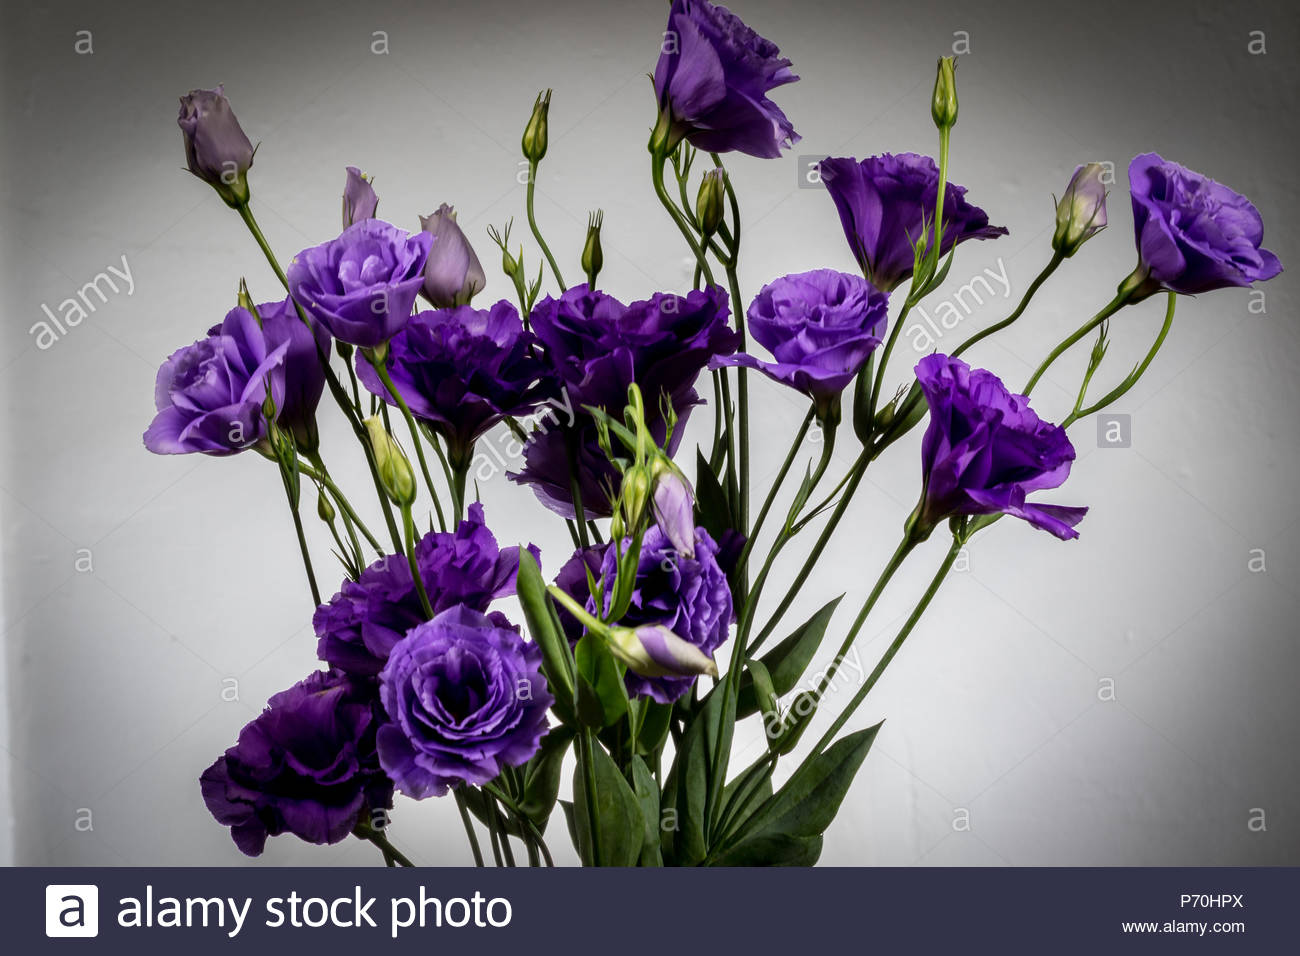 A bouquet of Lisianthus Purple flowers - Stock Image